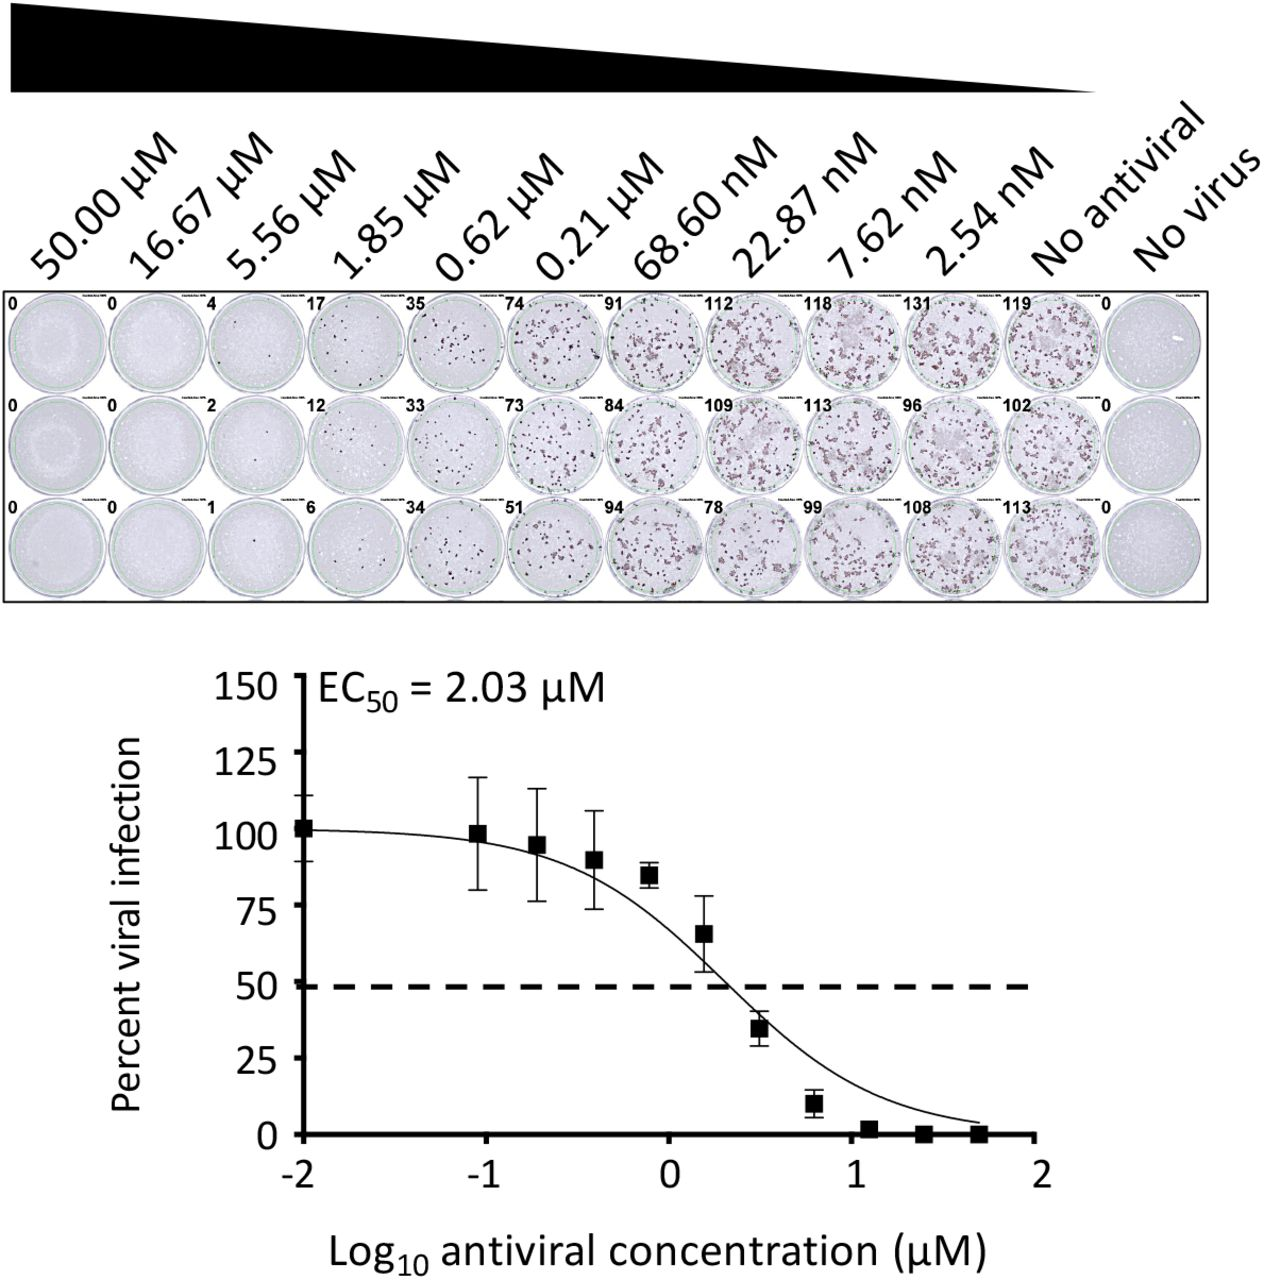 A PRMNT assay to identify SARS-CoV-2 antivirals, peroxidase staining: Confluent monolayers of Vero E6 cells (96-well plate format, ~4 x 10 4 cells/well, triplicates) are infected with ~100-200 PFU/well of SARS-CoV-2. After 1 h of virus adsorption, media is replaced with fresh infection media containing 1% Avicel and 2-fold serially diluted drugs. Cells in row 11 are incubated with virus only and cells in row are mock-infected and are used as internal controls in each of the plates. At 24 h p.i., cells are fixed with 10% formalin solution. After 24 h fixation, cells are washed 3X with PBS and incubated with 1μg/mL of a SARS-CoV-1 cross-reactive NP mAb (1C7) at 37°C. After 1 h incubation with the primary mAb, cells are washed 3X with PBS and incubated with a secondary POD anti-mouse Ab (diluted according to the manufacturer's instruction) at 37°C. After 30 minutes incubation with the secondary Ab, cells are washed 3X with PBS and developed with the DAB substrate kit. Positive staining plaques in each of the wells are quantified using an ELISPOT plate reader. The effective concentration 50 (EC 50 ) is calculated as the highest dilution of the mAb, pAb or sera that prevents 50% plaque formation in infected cells, determined by a sigmoidal dose response curve. Dotted line indicates 50% neutralization. Data were expressed as mean and SD from triplicate wells.